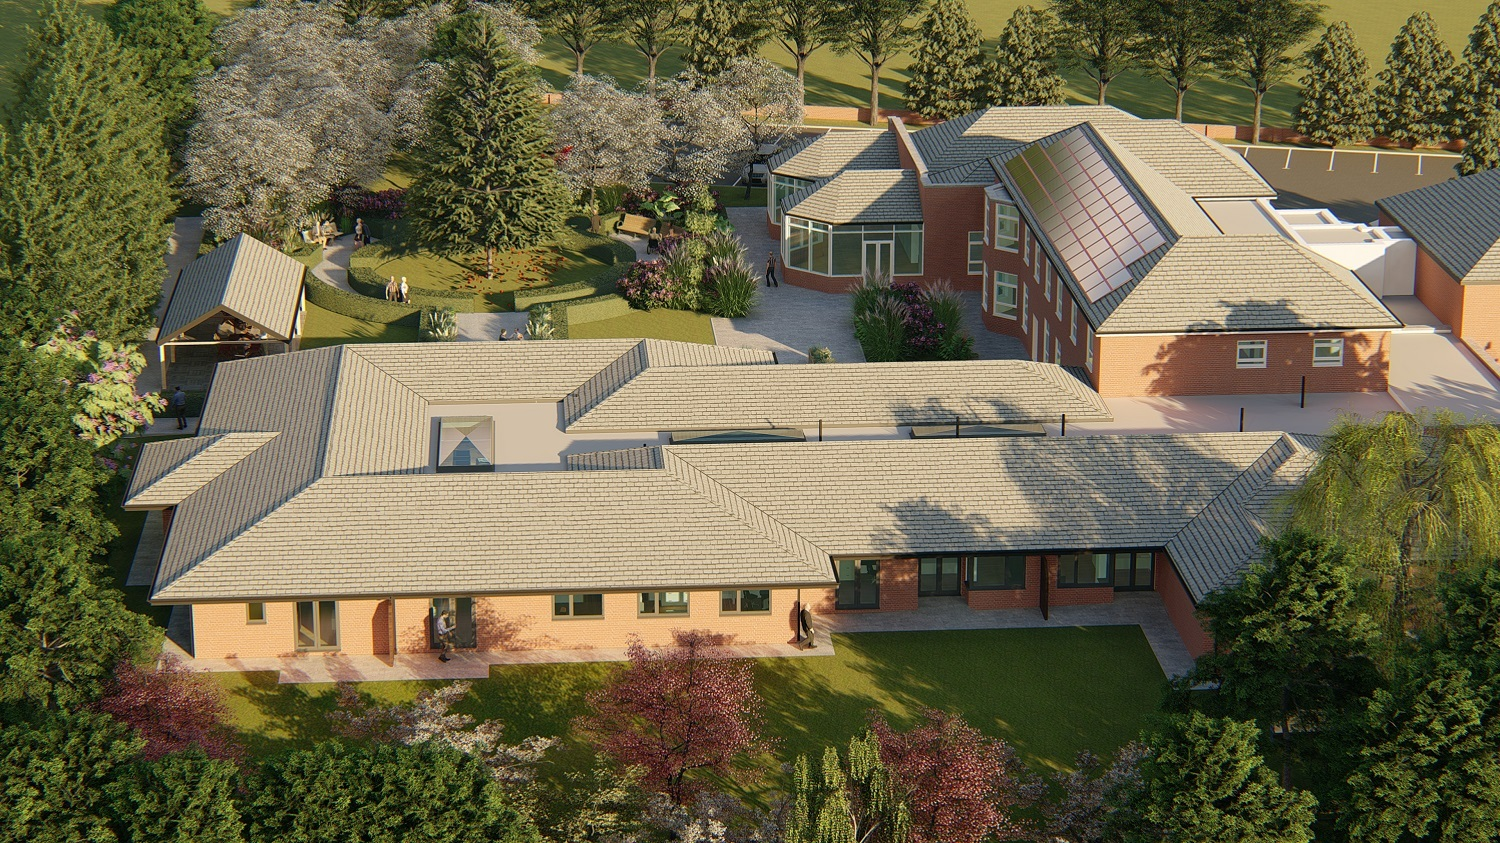 Design image of the new 12-bed in-patient unit at Dr Kershaw's Hospice which is expected to start in March 2019.